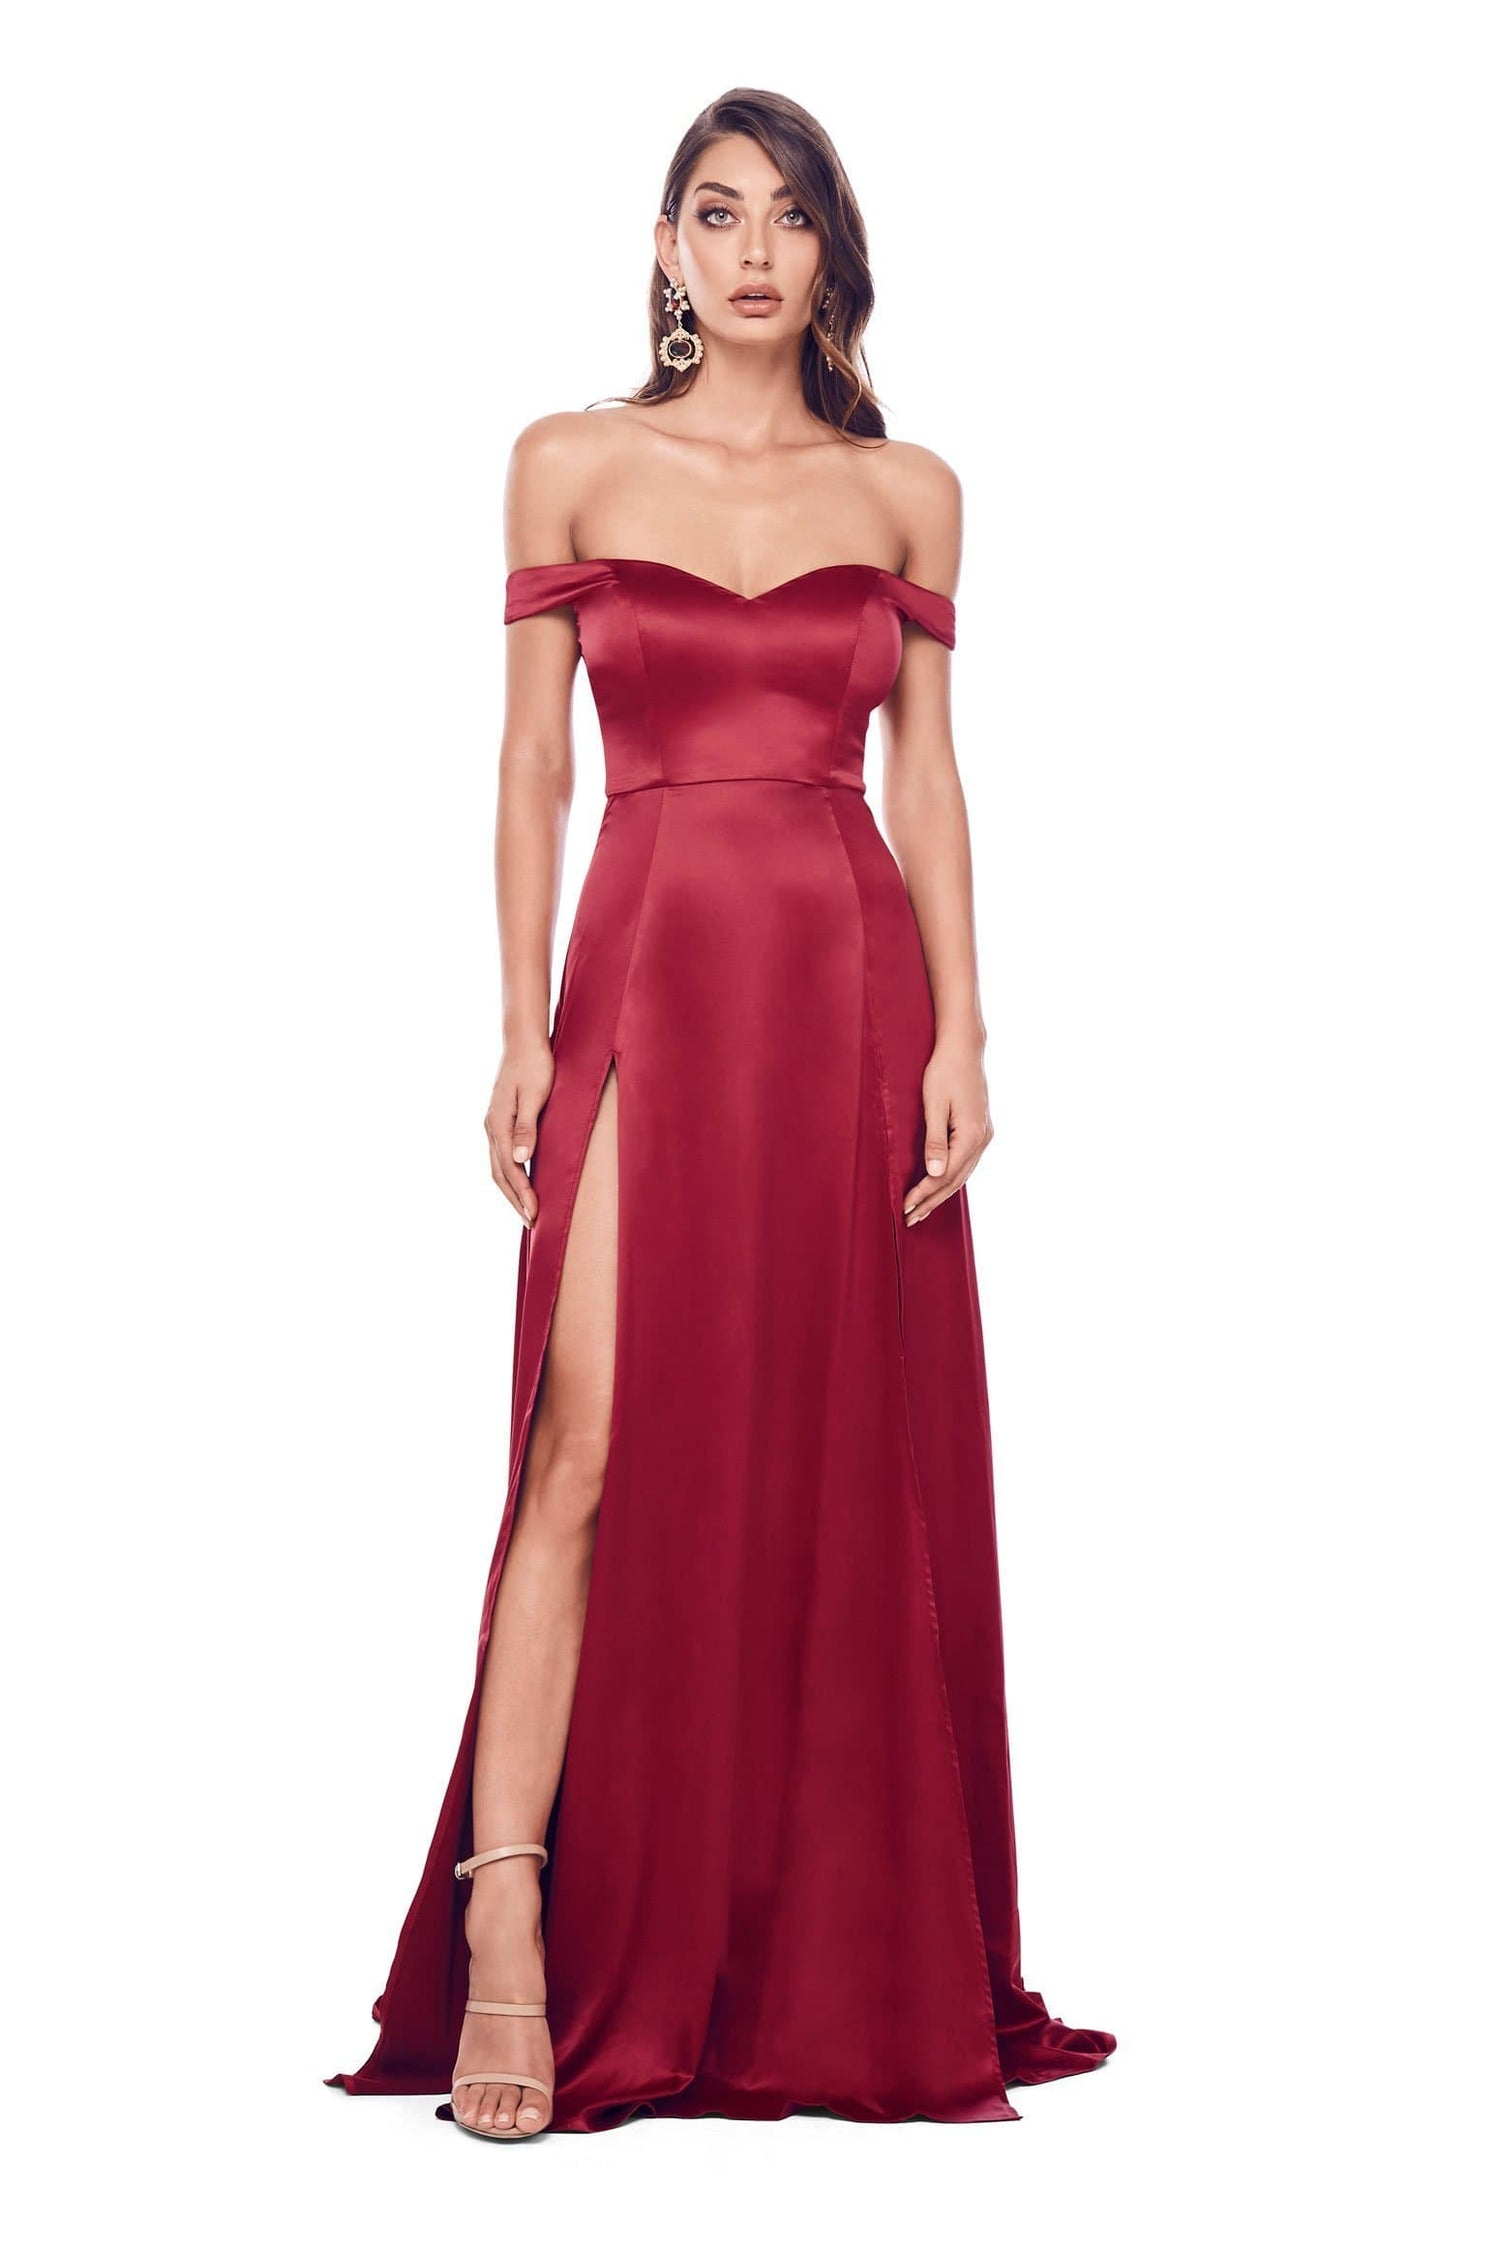 Florentina - Deep Red Satin Gown with Sweetheart Neckline & Side Slit